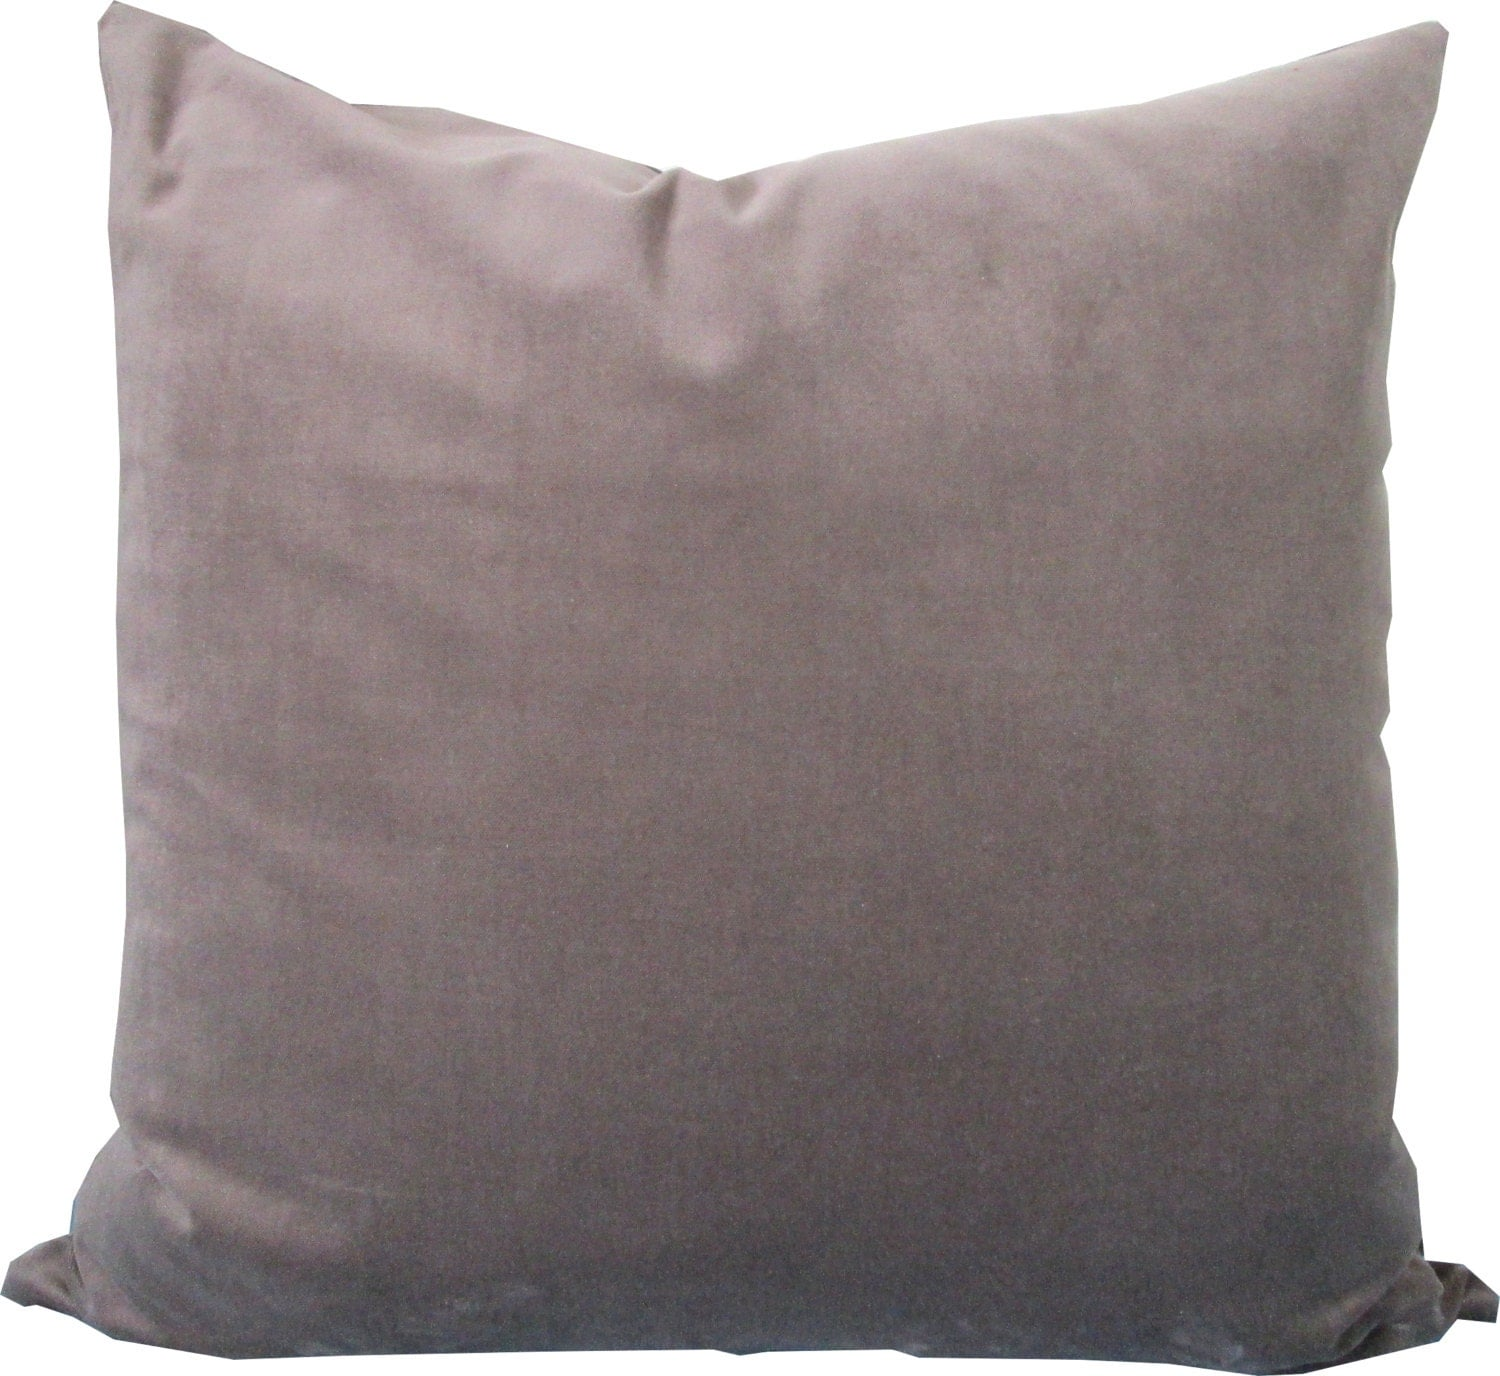 Decorative Pillow Cover-Velvet Taupe-Gray-Accent by KLineDeco